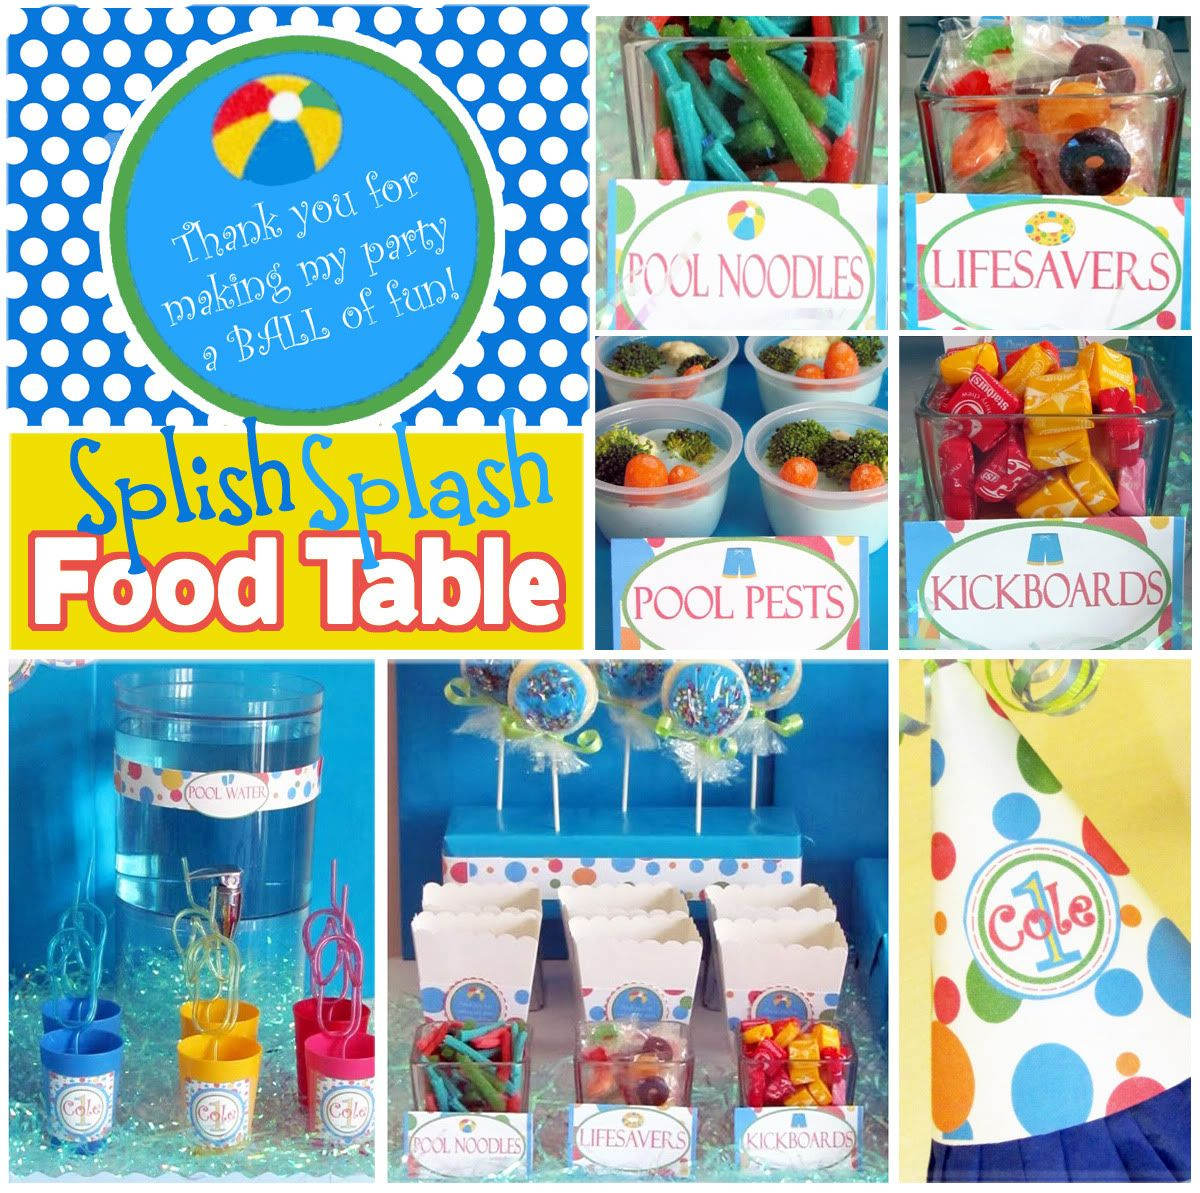 Pool Party Favors Ideas pool party favors beach baskets inflatable dolphins personalized cups Pool Party Pool Food